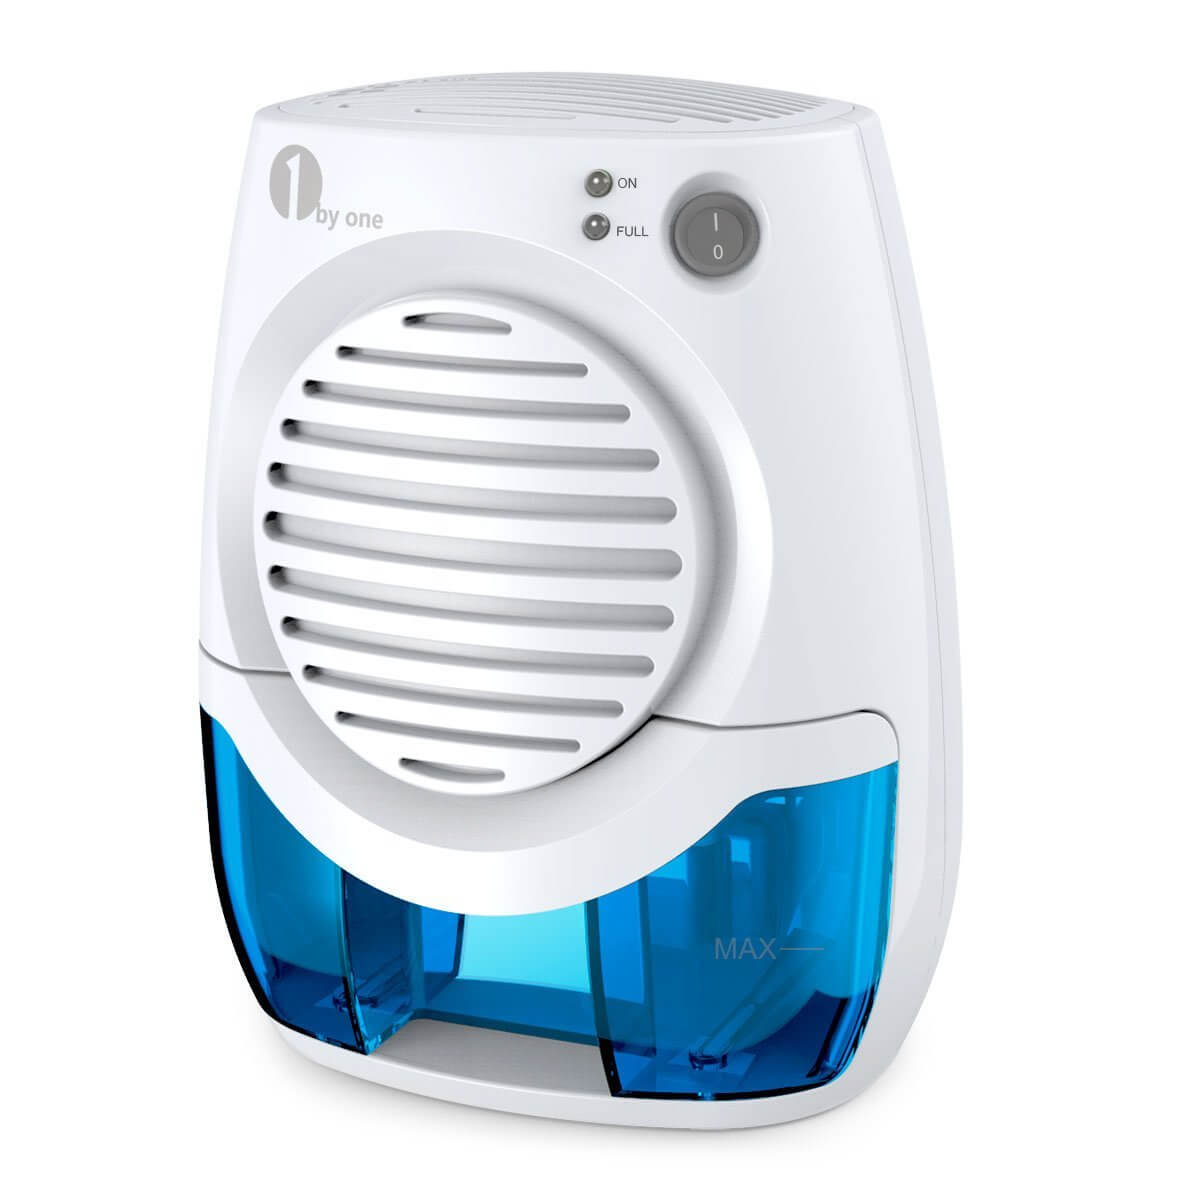 10 Best Dehumidifier for Bathroom Reviews Smart Home Pick